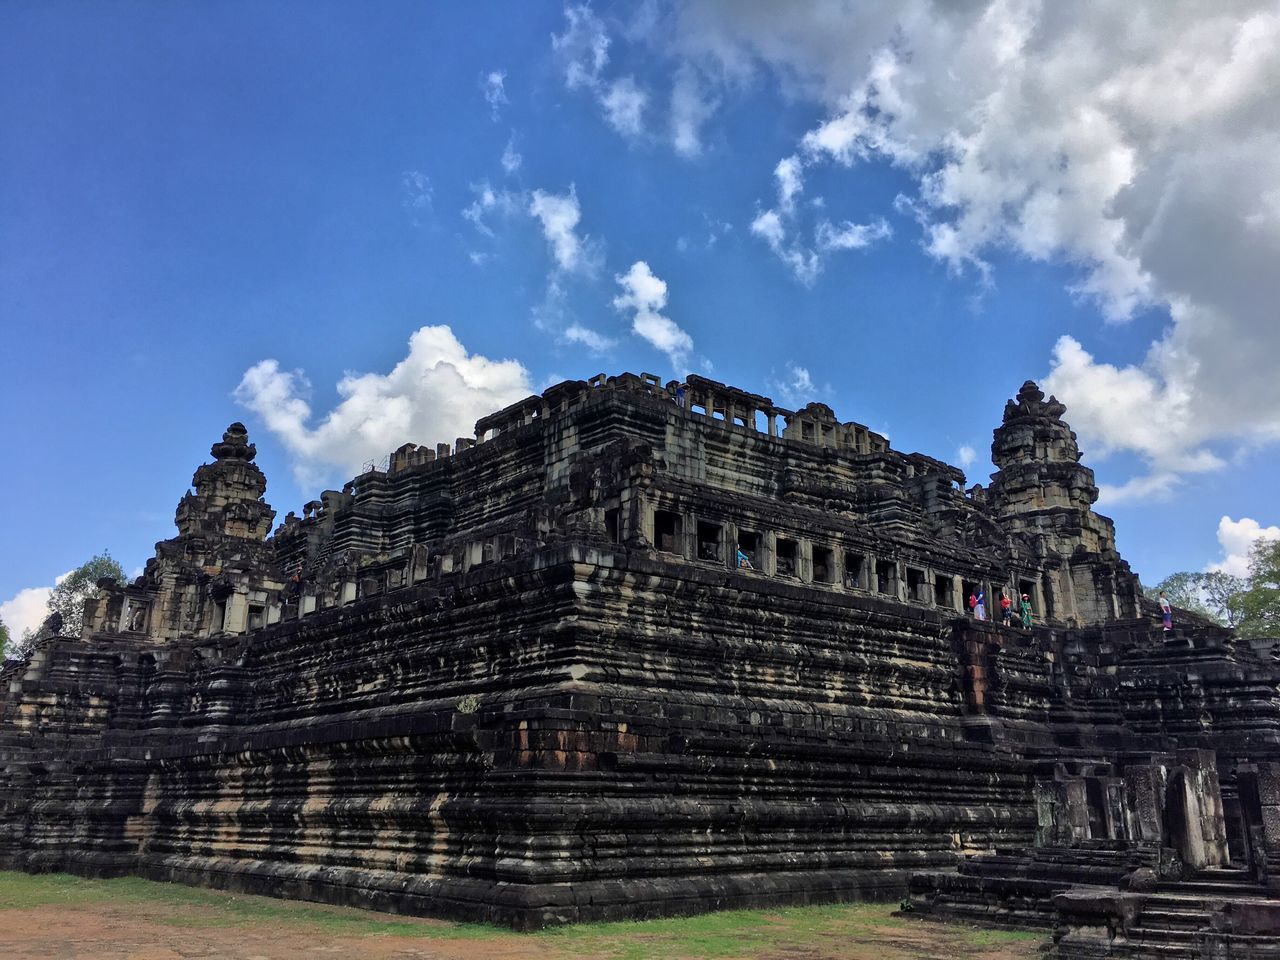 Angkor Thom History Architecture Ancient Civilization Spirituality Built Structure Sky Old Ruin Place Of Worship Religion Archaeology Building Exterior The Past Travel Destinations Cloud - Sky Ancient Travel Tourism Day Pyramid Low Angle View Angkor Thom Cambodia